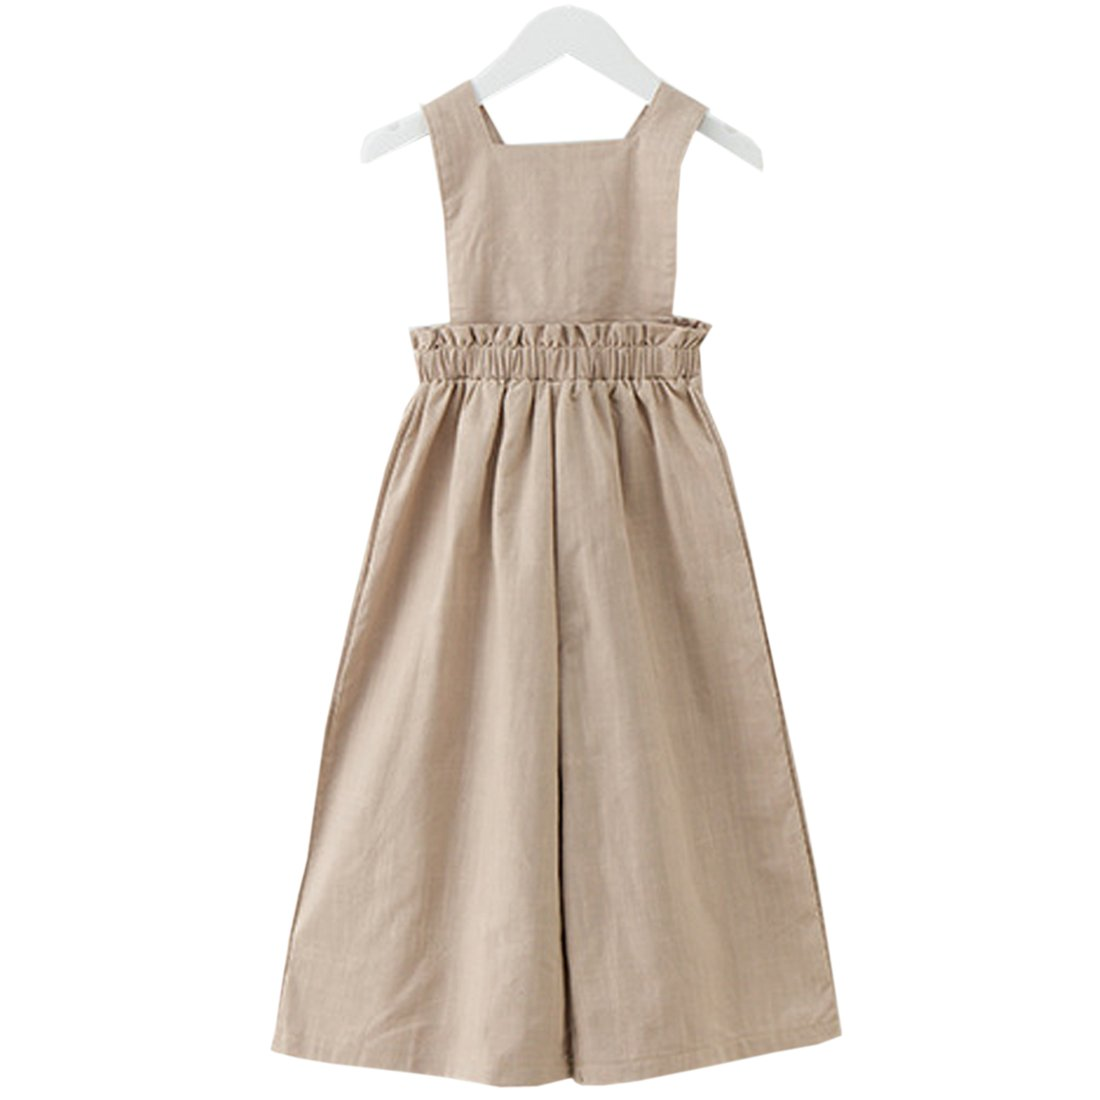 YueLian Girls Summer Removable Strap Linen Long Pants Overalls Jumpsuits (7-8 Years)